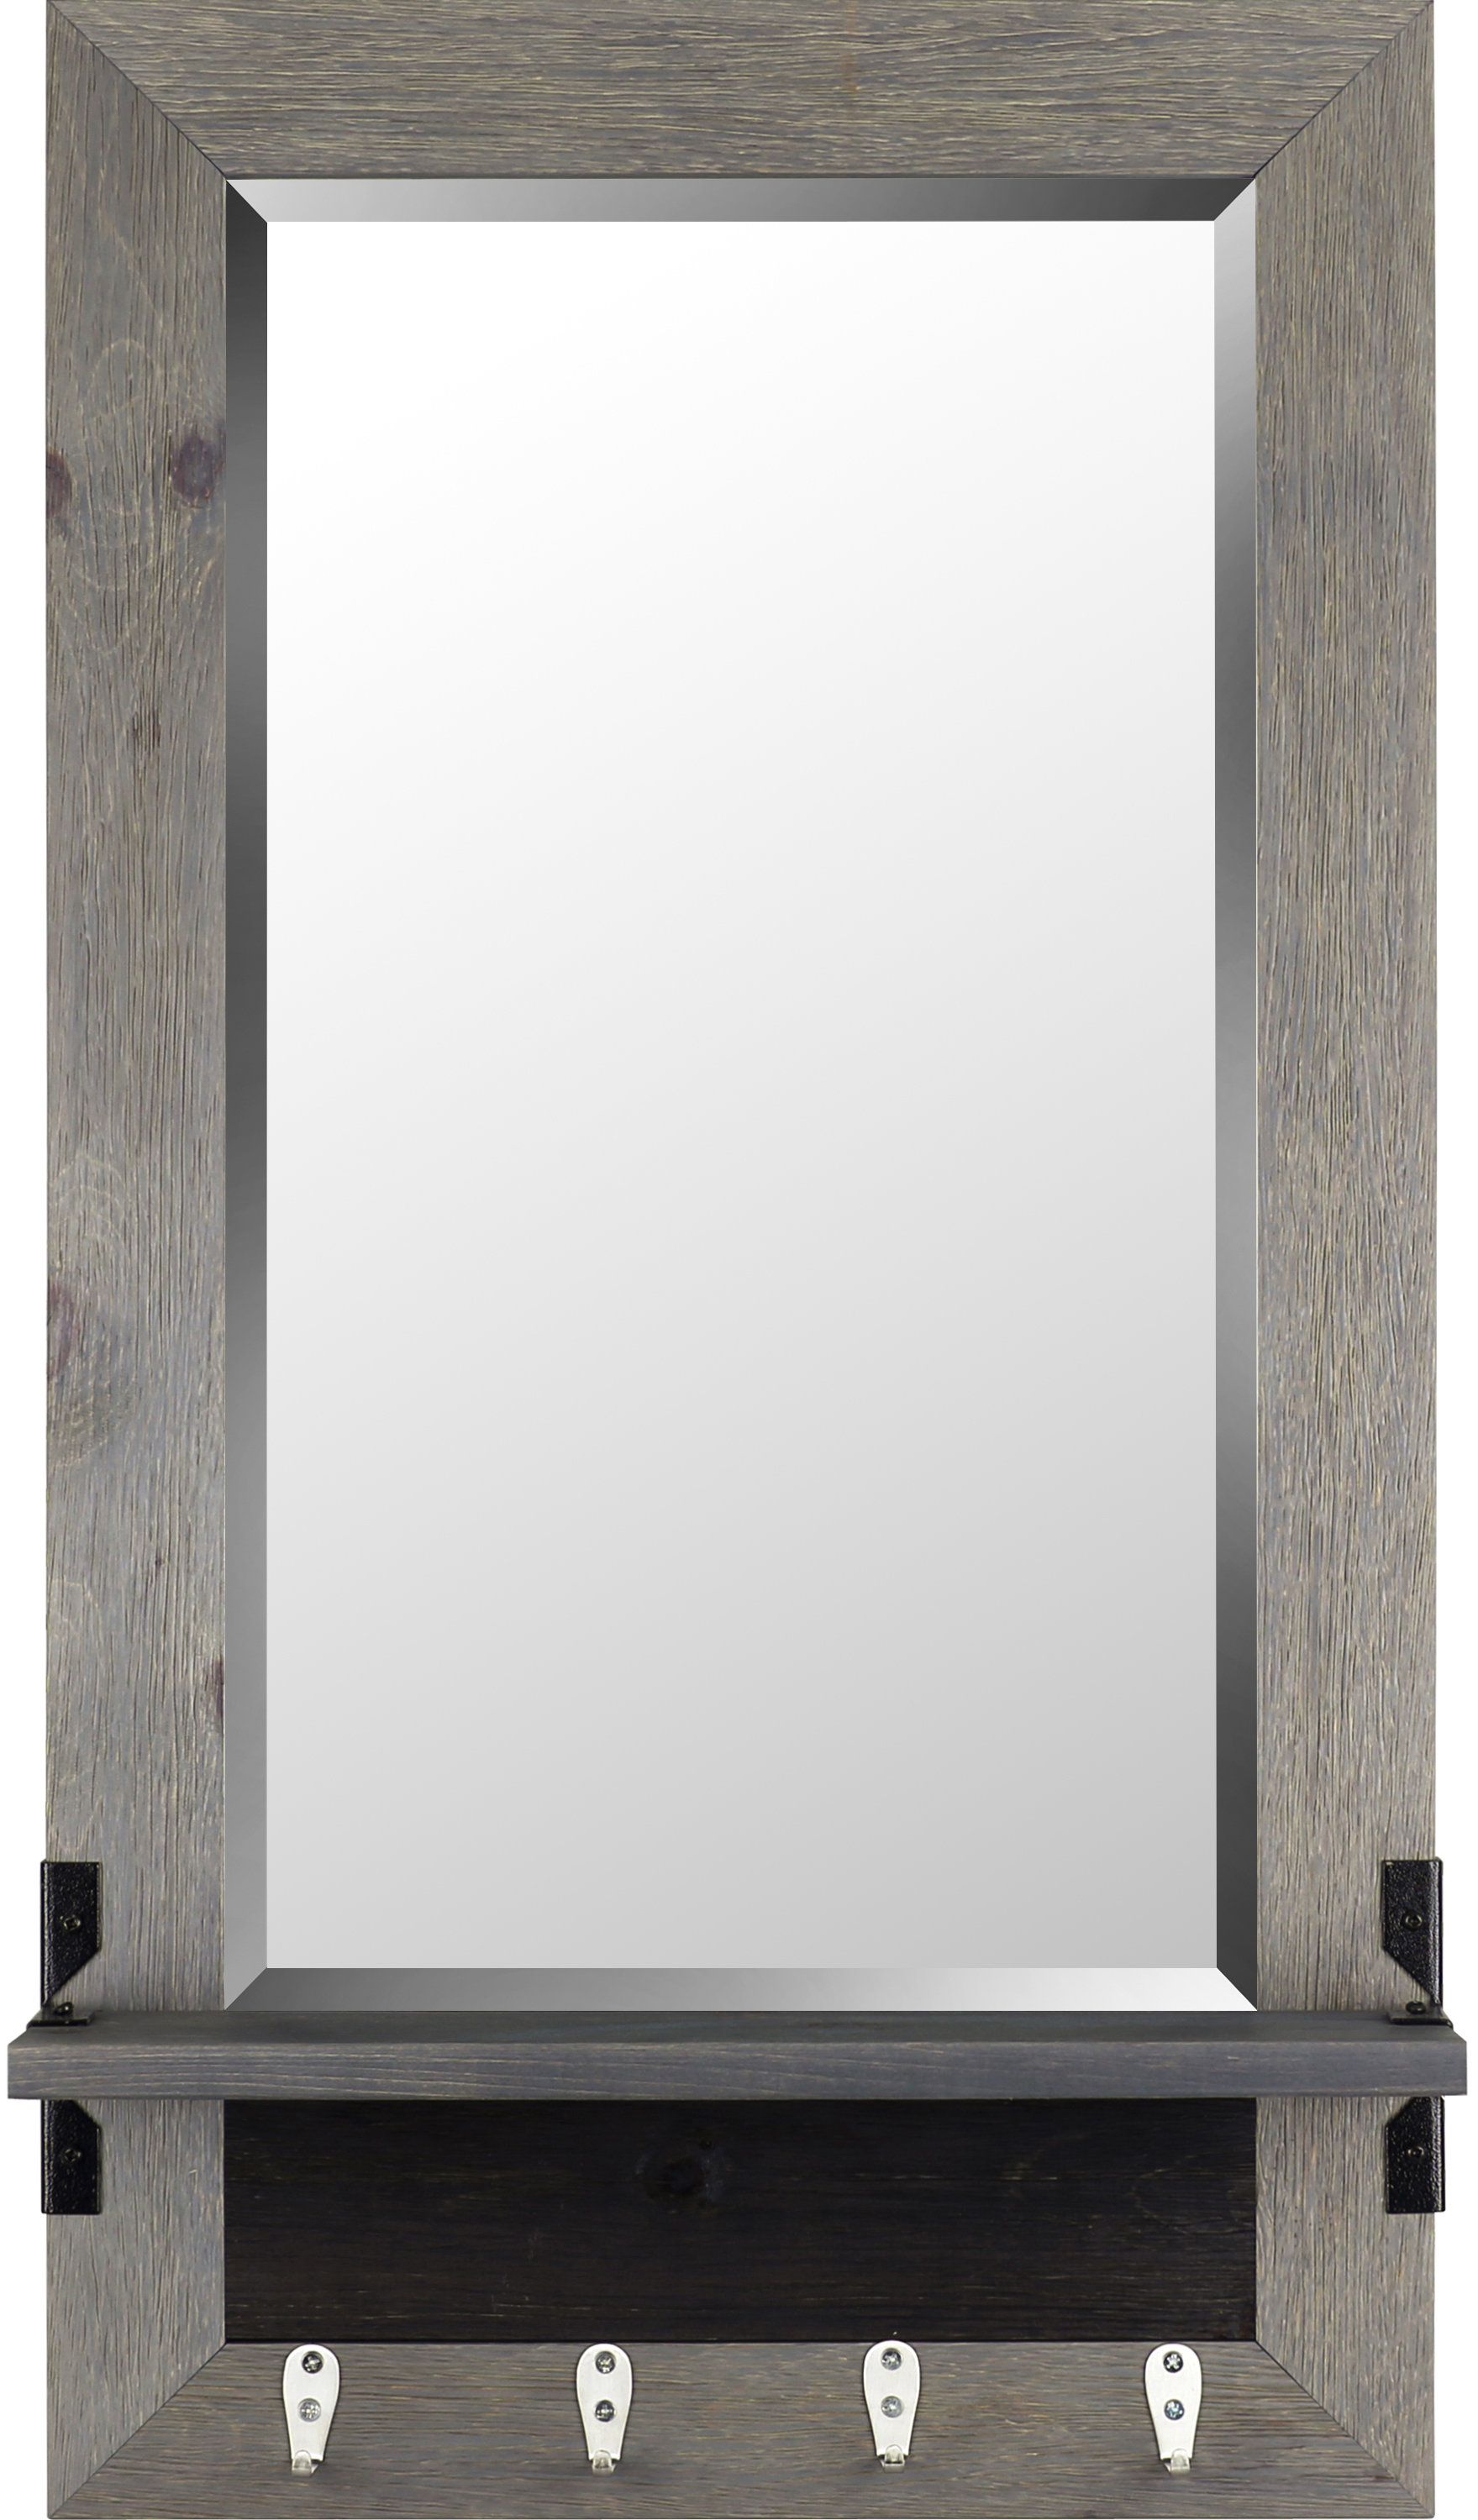 Shelf Wood Modern & Contemporary Beveled Shelves Accent Mirror Regarding Modern & Contemporary Beveled Accent Mirrors (View 9 of 20)